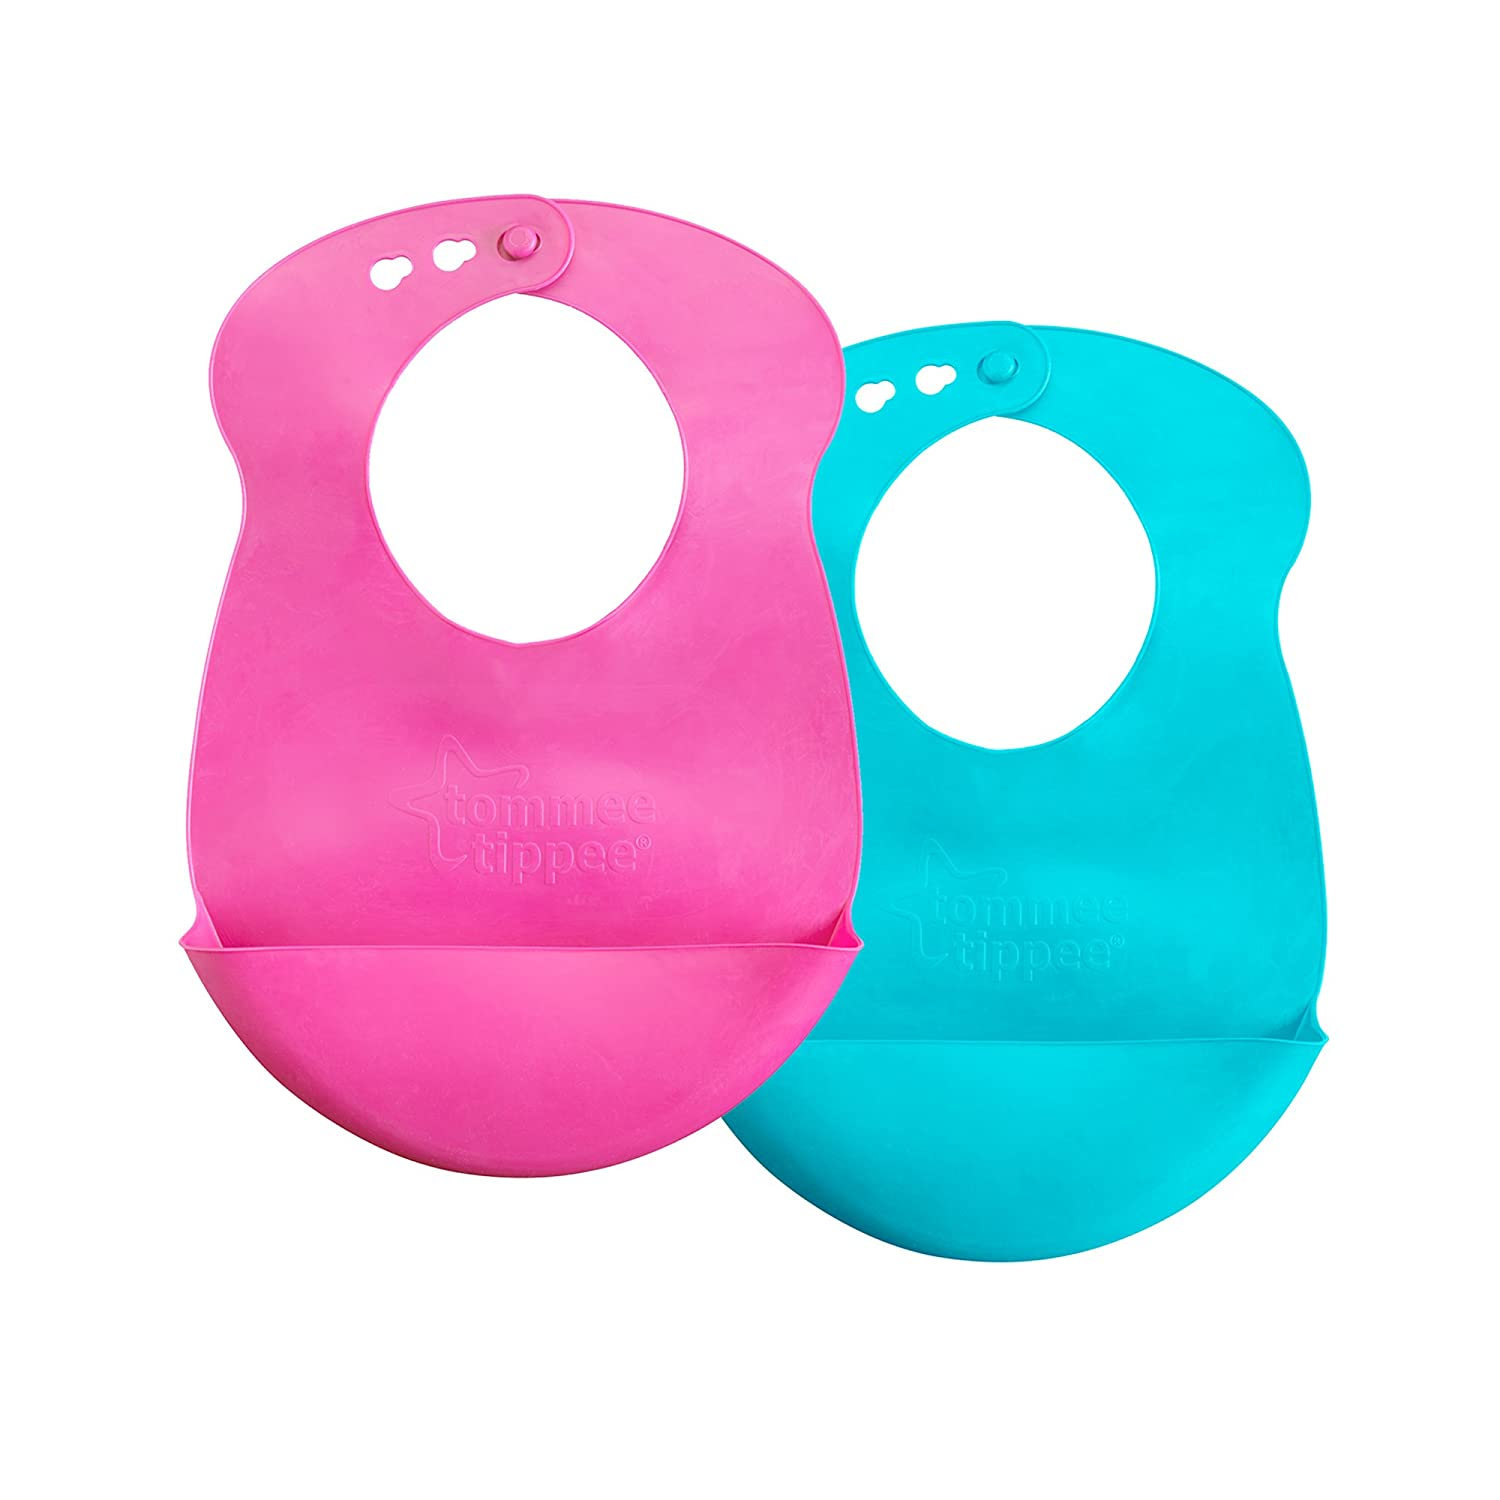 Tommee Tippee Easi-Roll Up Bib, BPA-Free Crumb & Drip Catcher, Pink & Blue/Pink & Purple, 2 Count (Colors May Vary)